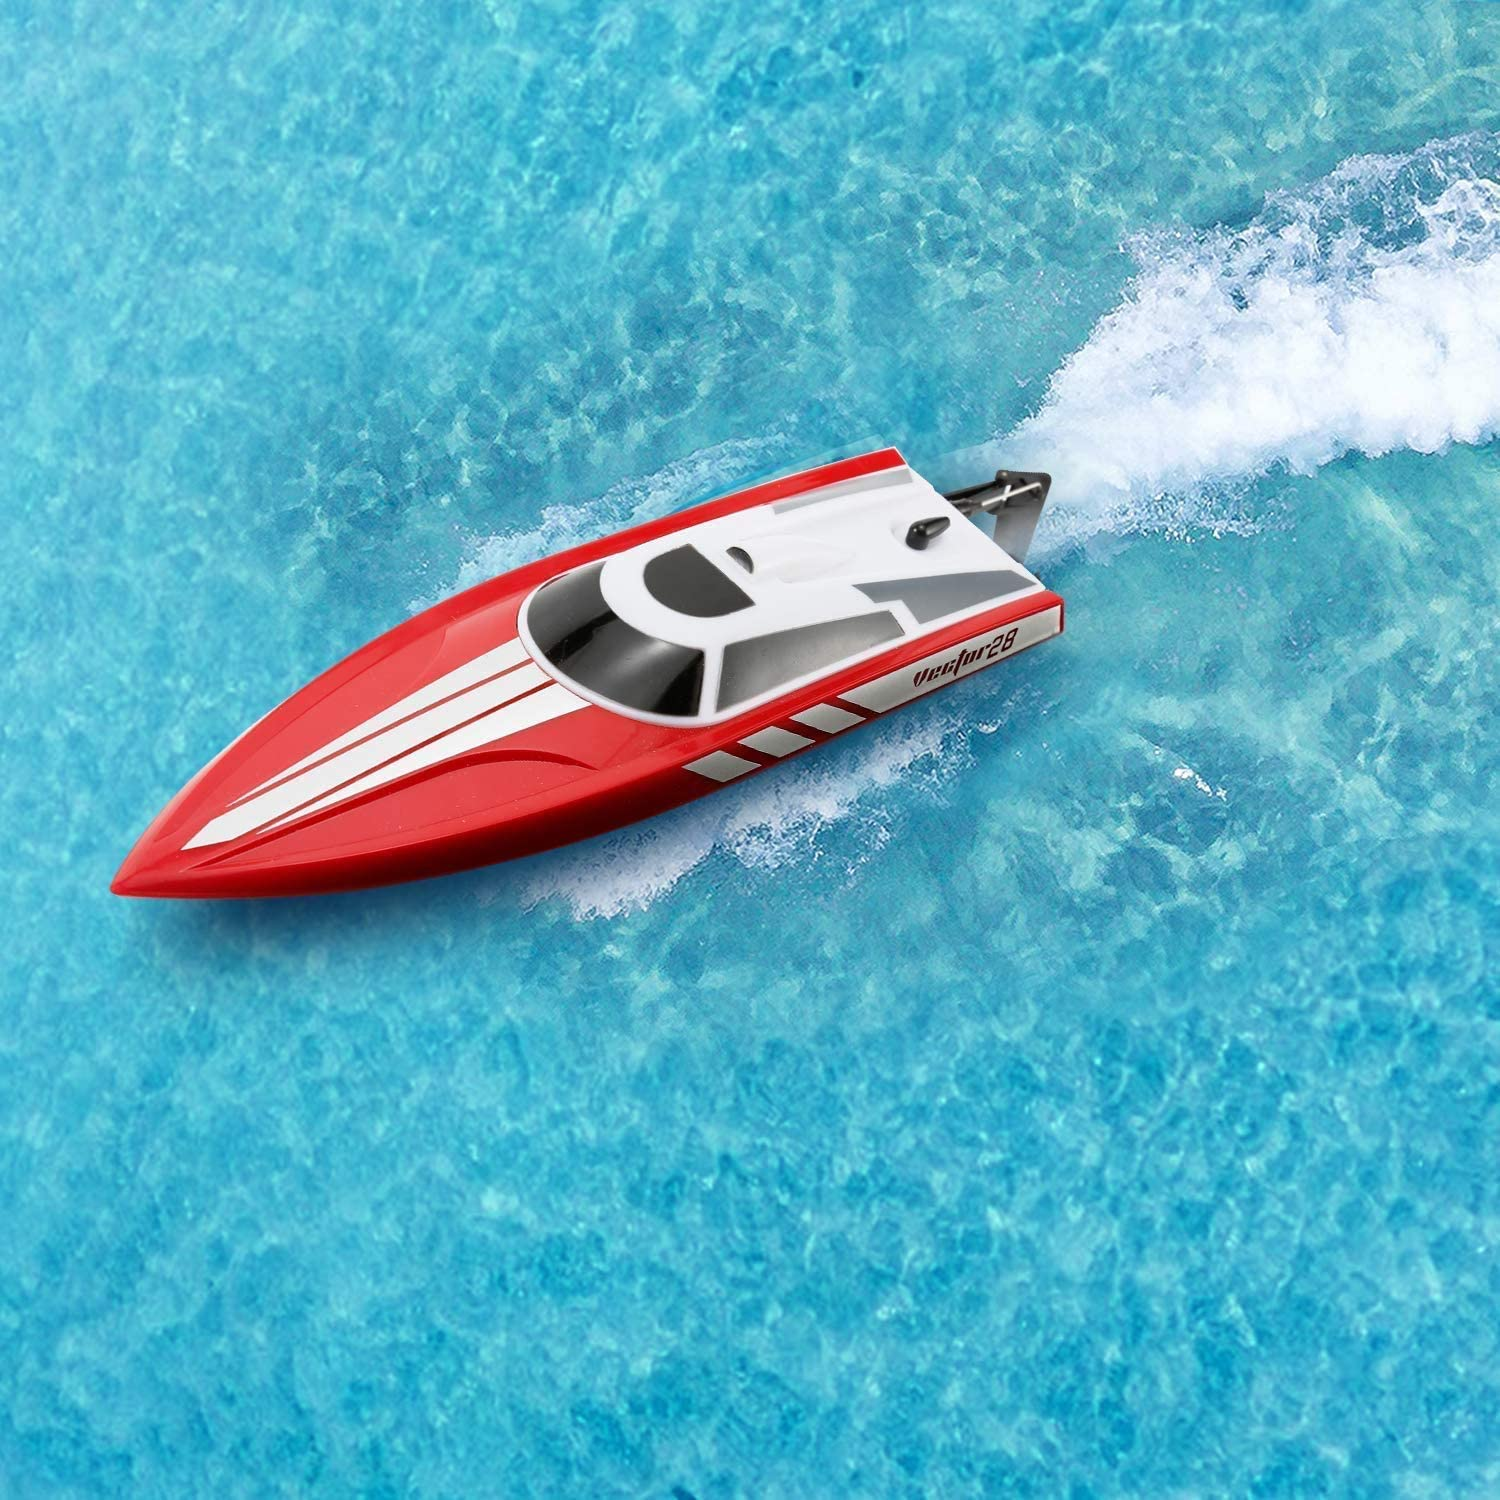 Remote Control Boat: for Pools, Lakes & Rivers, Fast RC Boat for Adults & Kids with 2.4Ghz Radio Controller, 30MPH Self-Righting Remote Control Electric Toy Boats